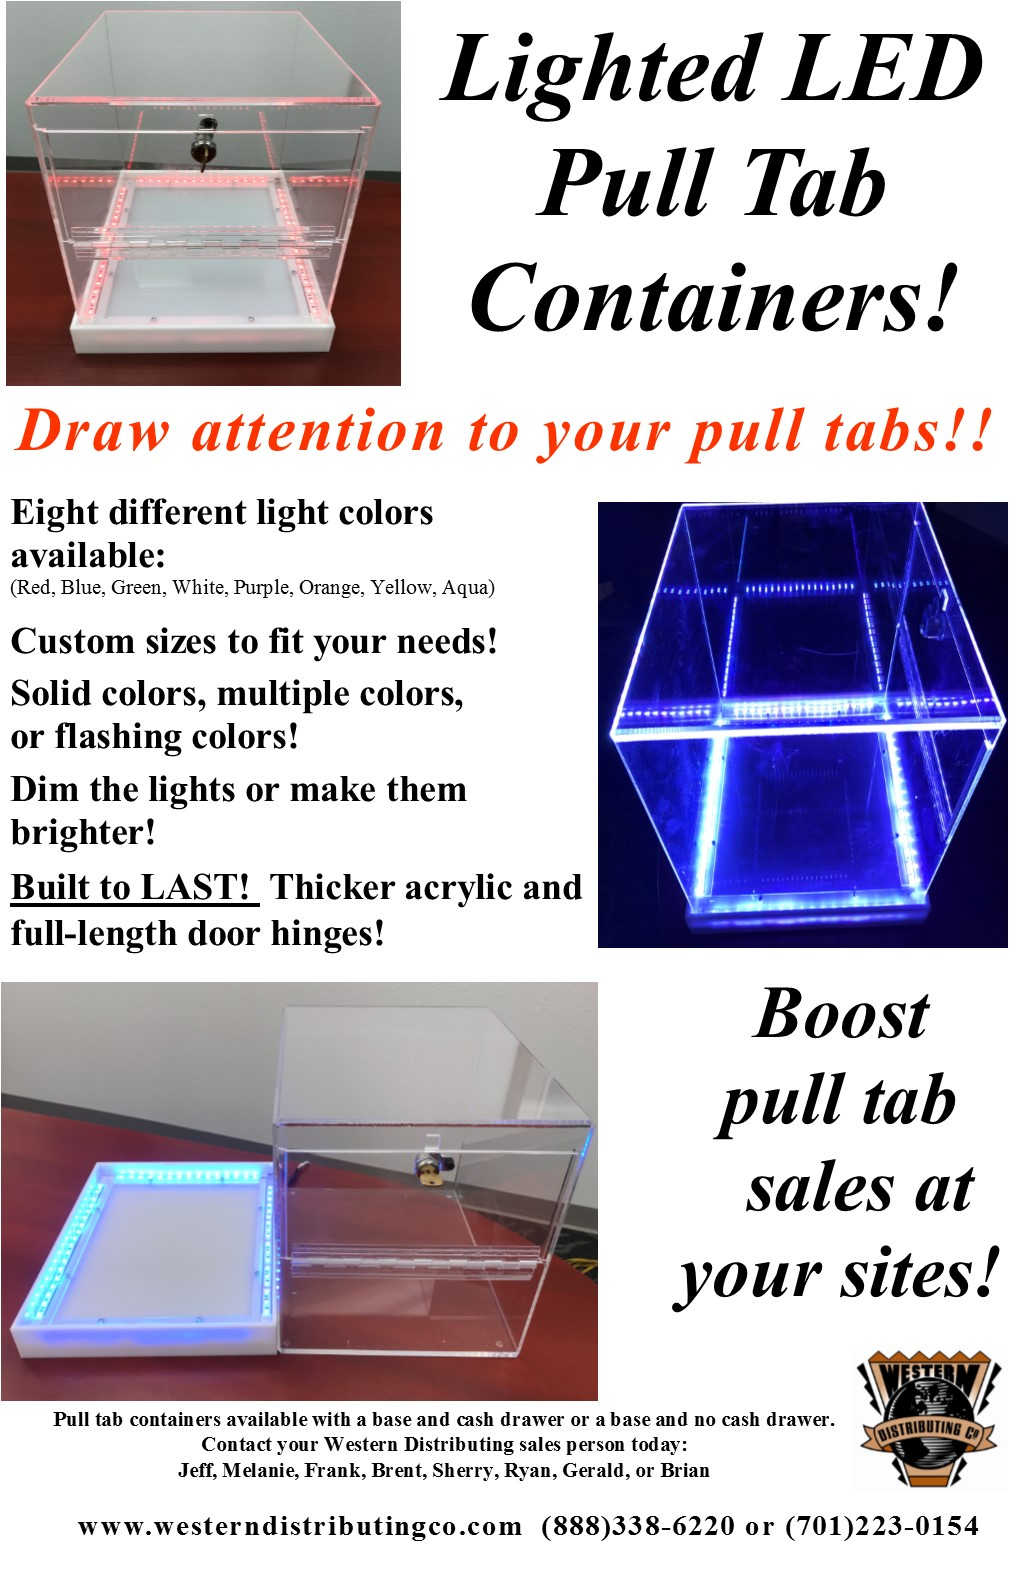 LEDPullTabContainers3